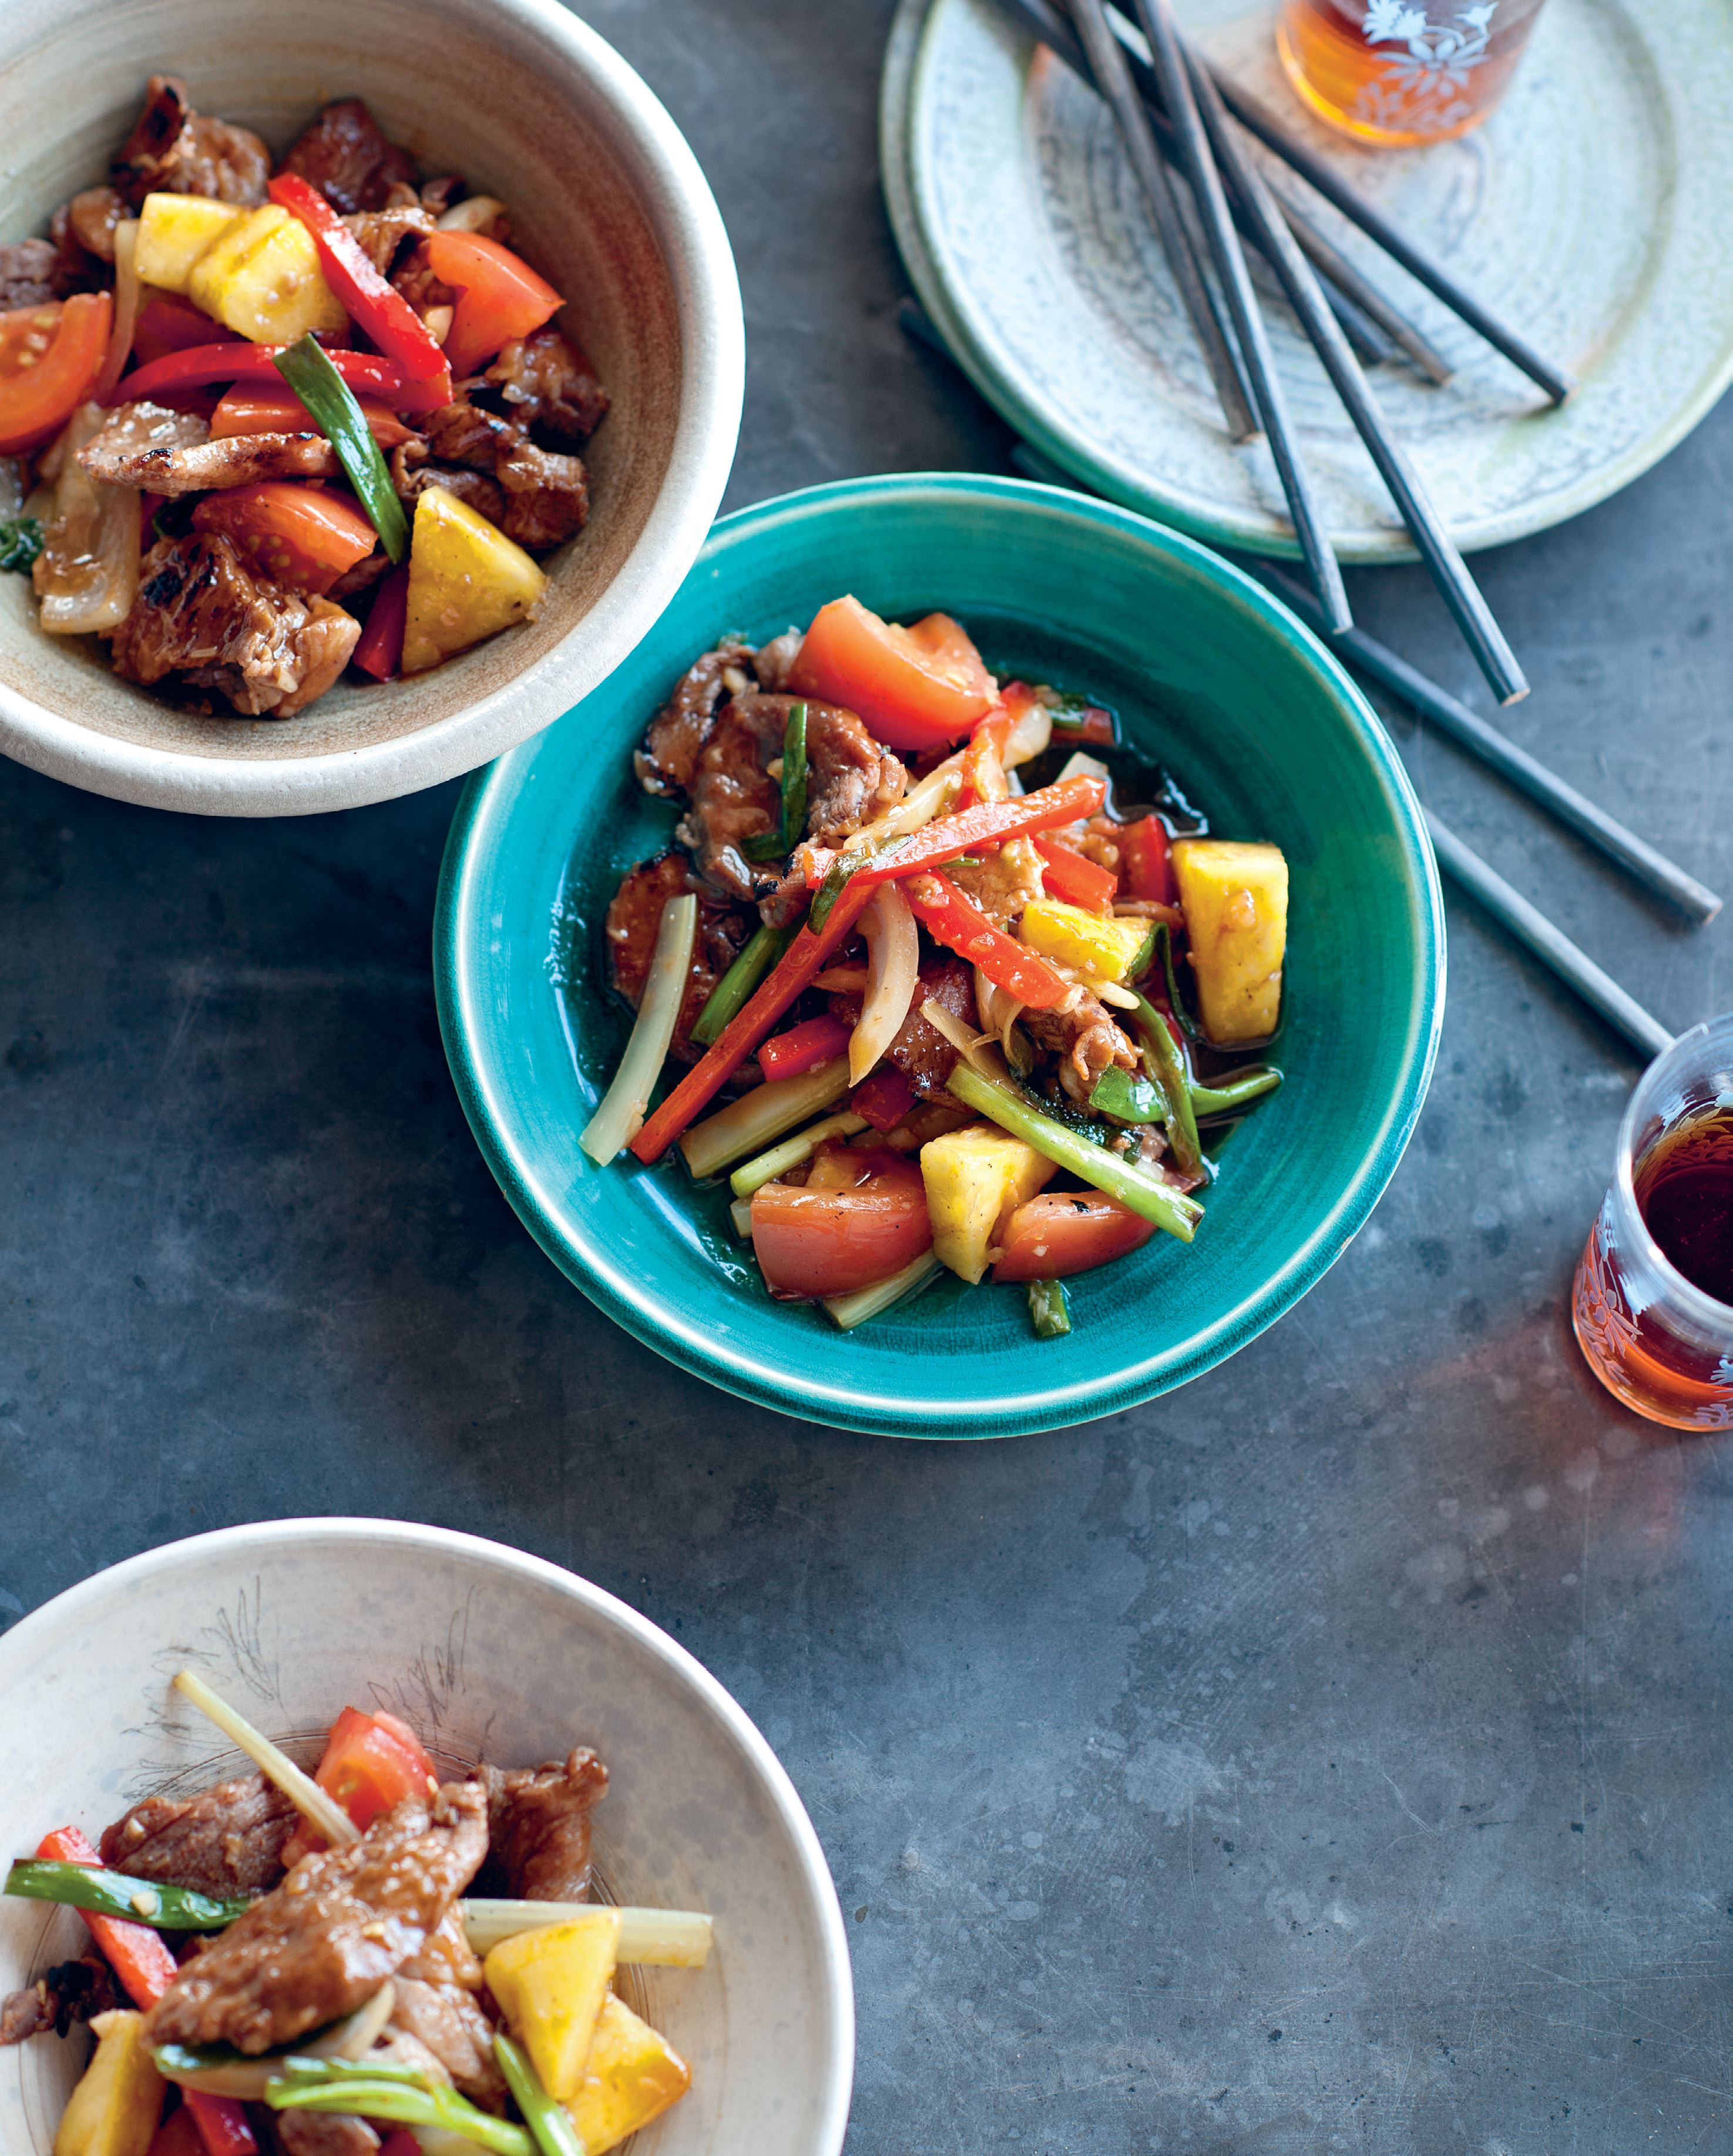 Stir-fried pork with sweet pineapple and vegetables